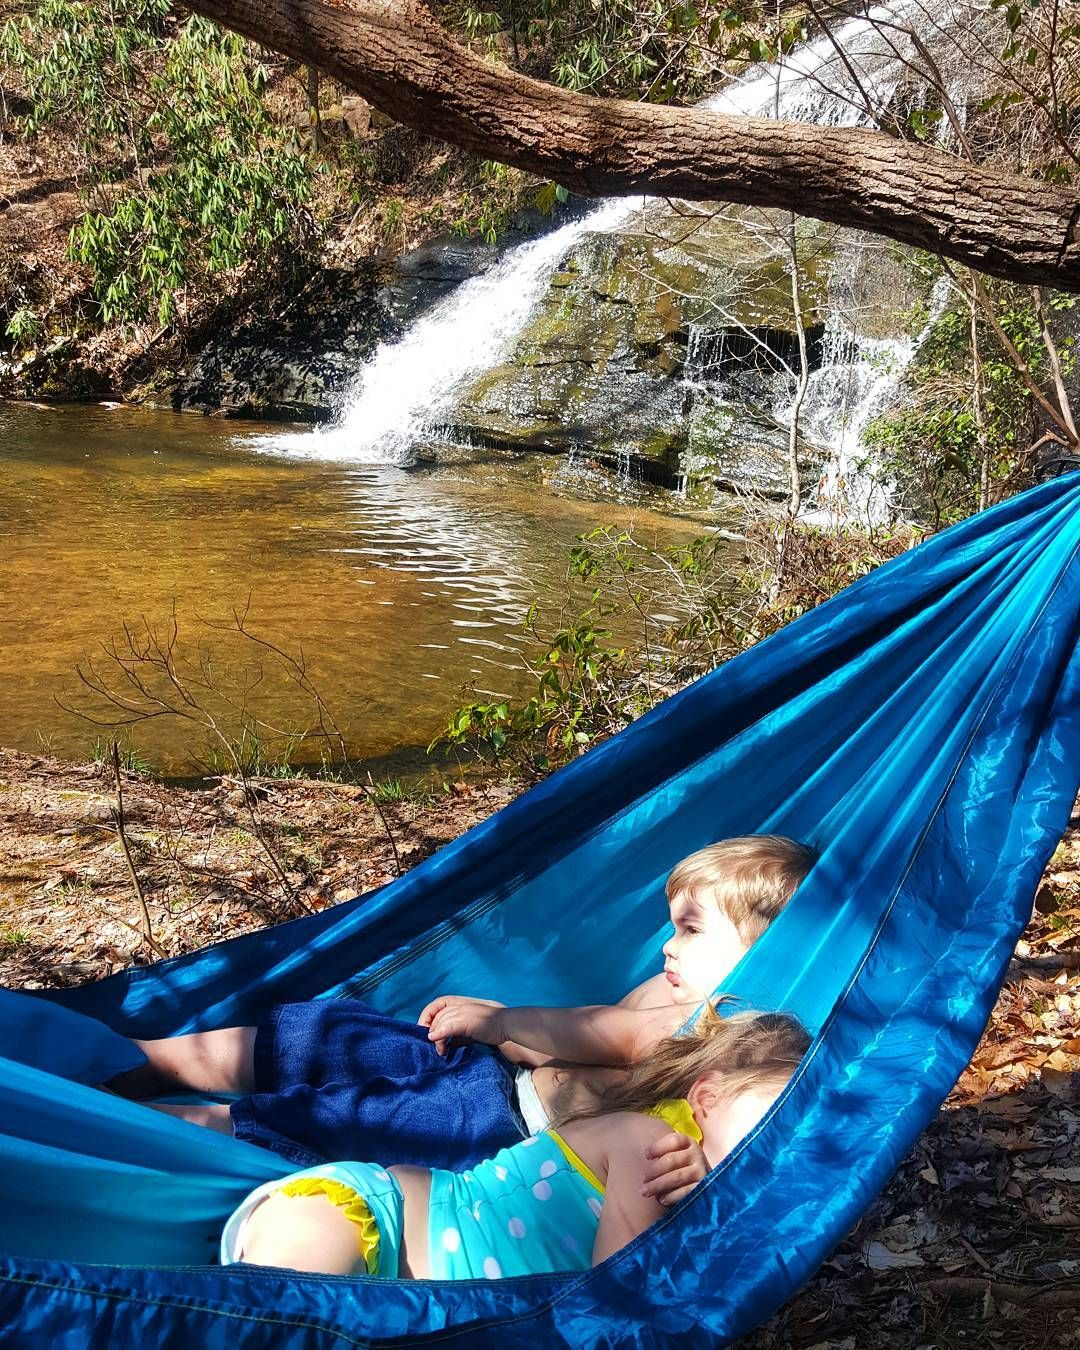 I got a hammock full of cuties. #couplegoals #mountainkids #raiseemright #hammocklife by @blueridgemountaingirl